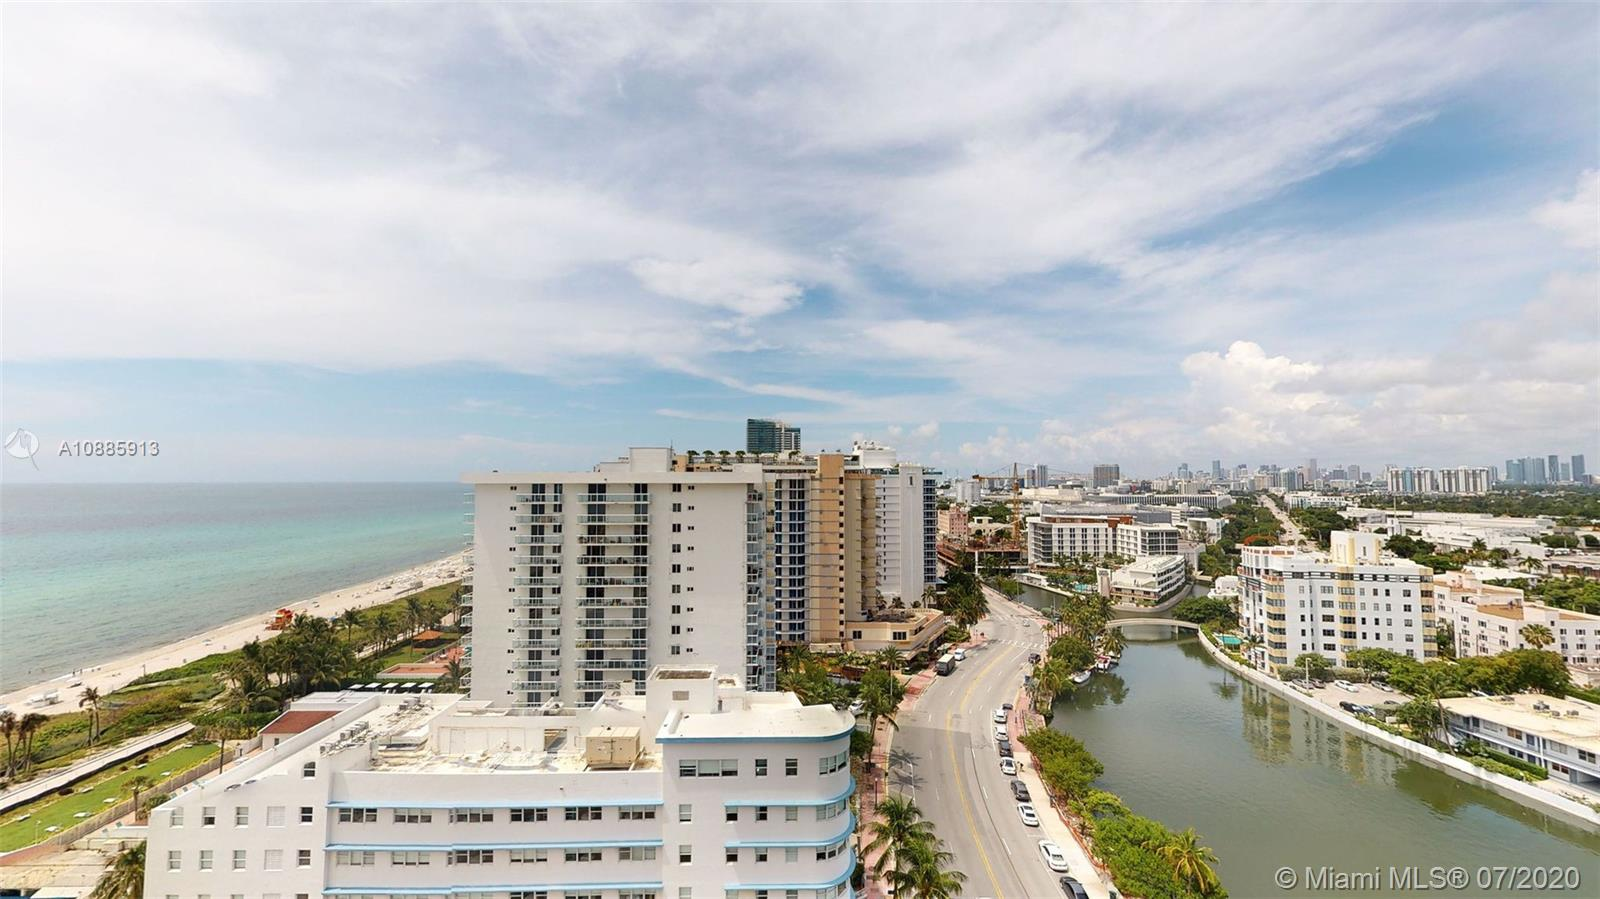 Beautifully remodeled, OPEN CONCEPT unit in Faena District, Miami Beach's most exclusive strip of beachfront.  Steps away from The Edition & other multimillion dollar units.  Direct bay & ocean views.  Access to ocean & Boardwalk.  Walk to Lincoln Road, The Edition, lots of restaurants, South Beach etc.  Buy to occupy or for investment purposes.  Seasonal rentals permitted.  Please click on link to virtual tour on this listing or call/text for additional link.  Easy to show.  Call for appointment.